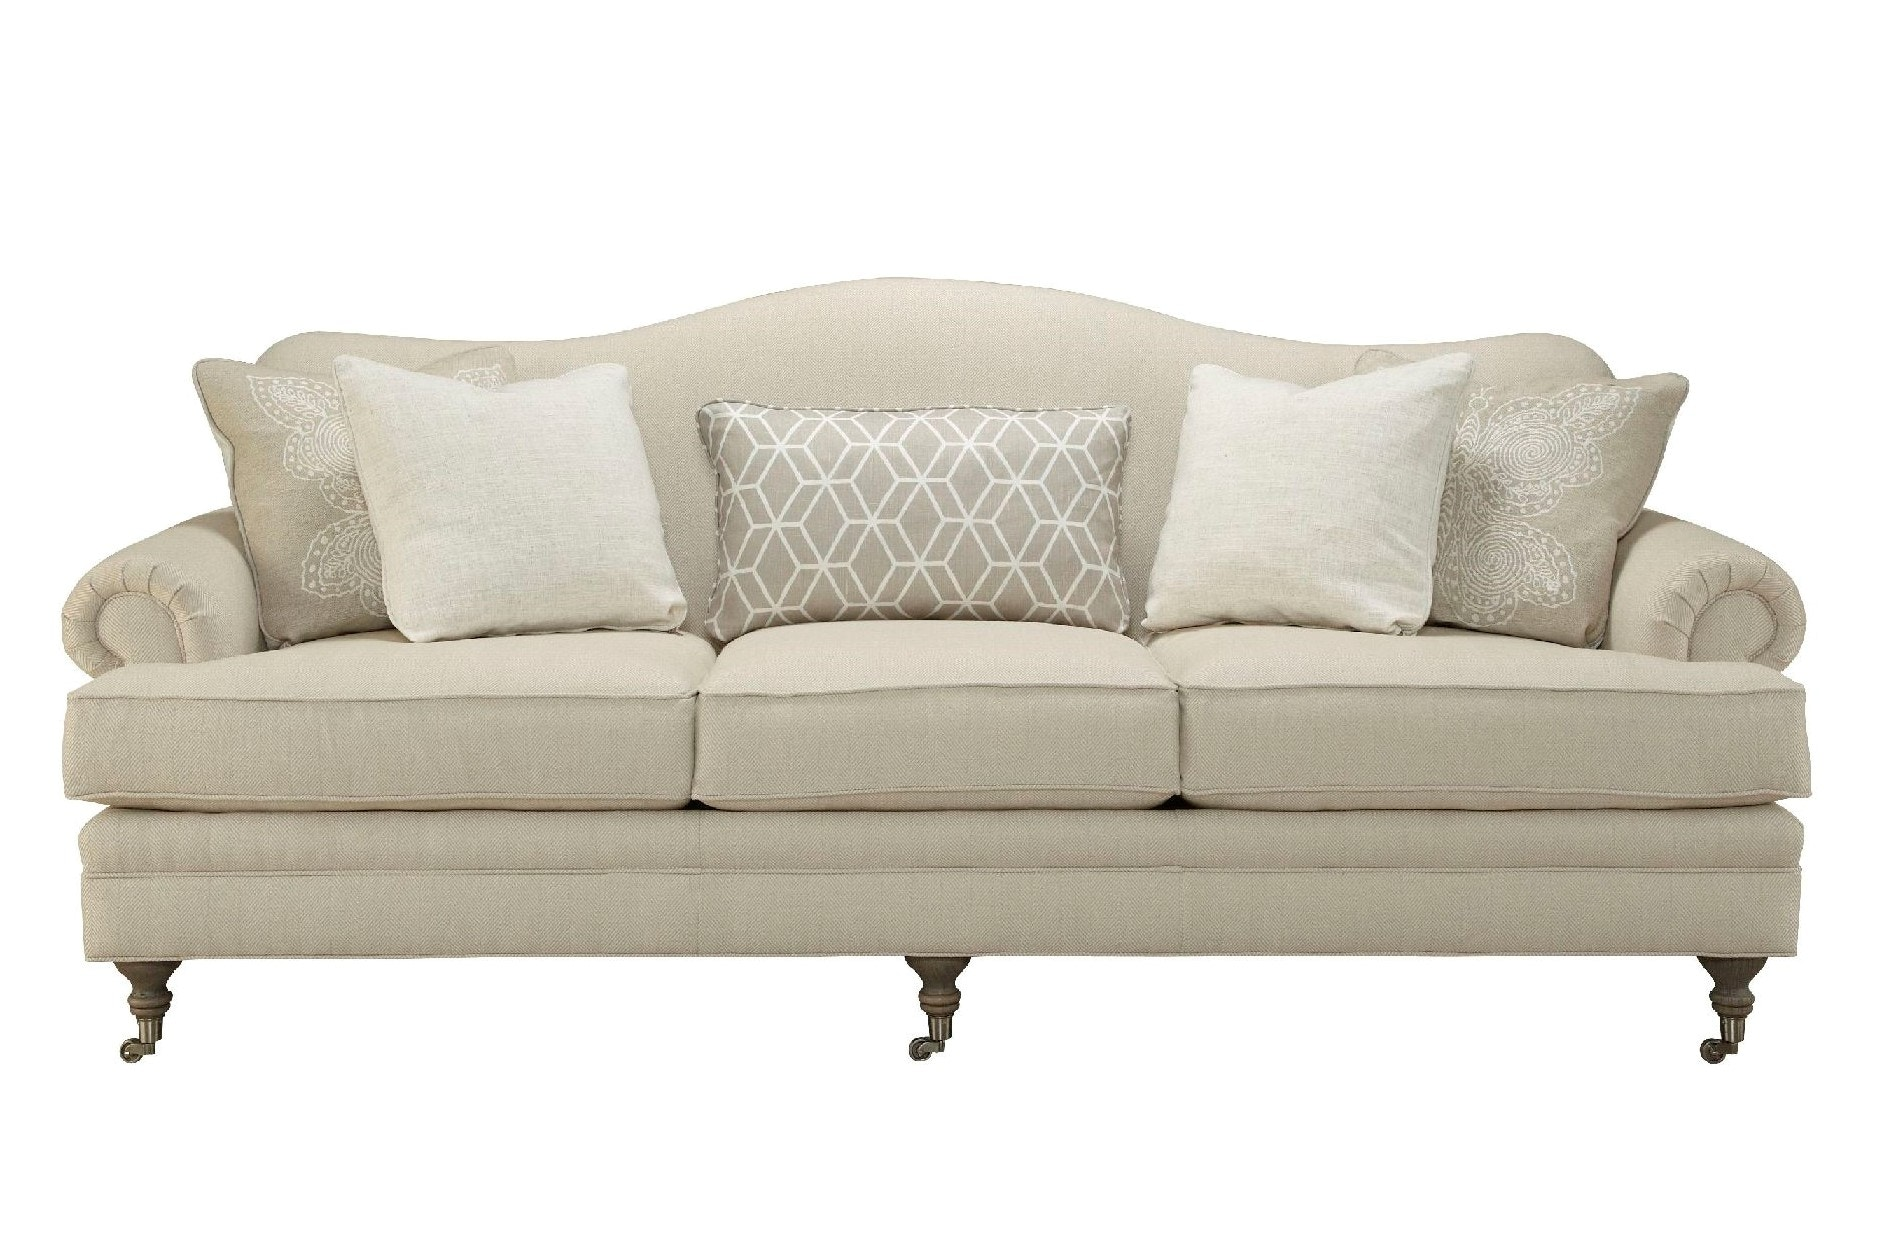 Southern Furniture Molly Sofa 26091